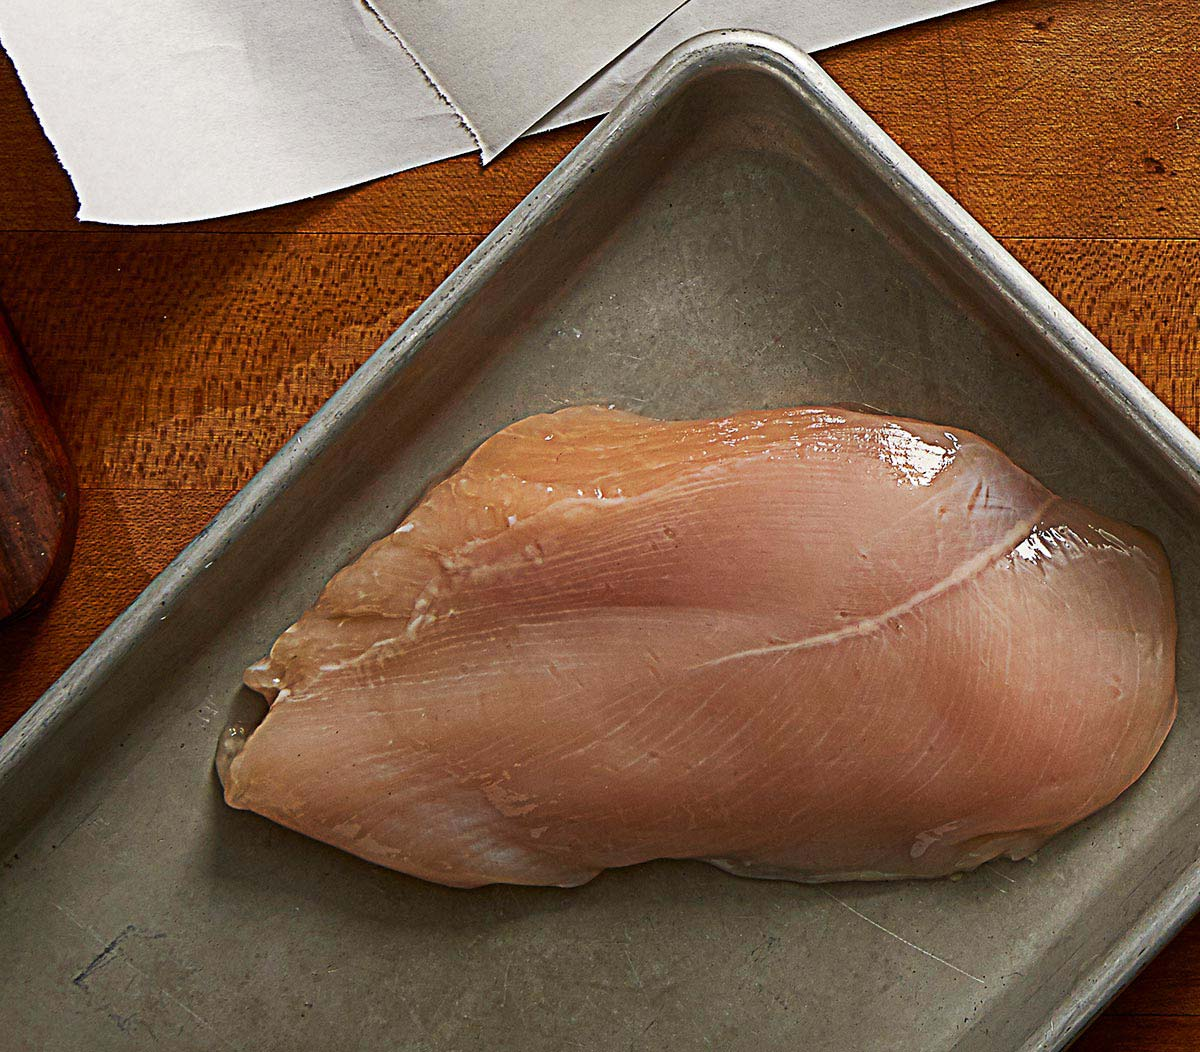 Boneless Skinless Chicken Breasts